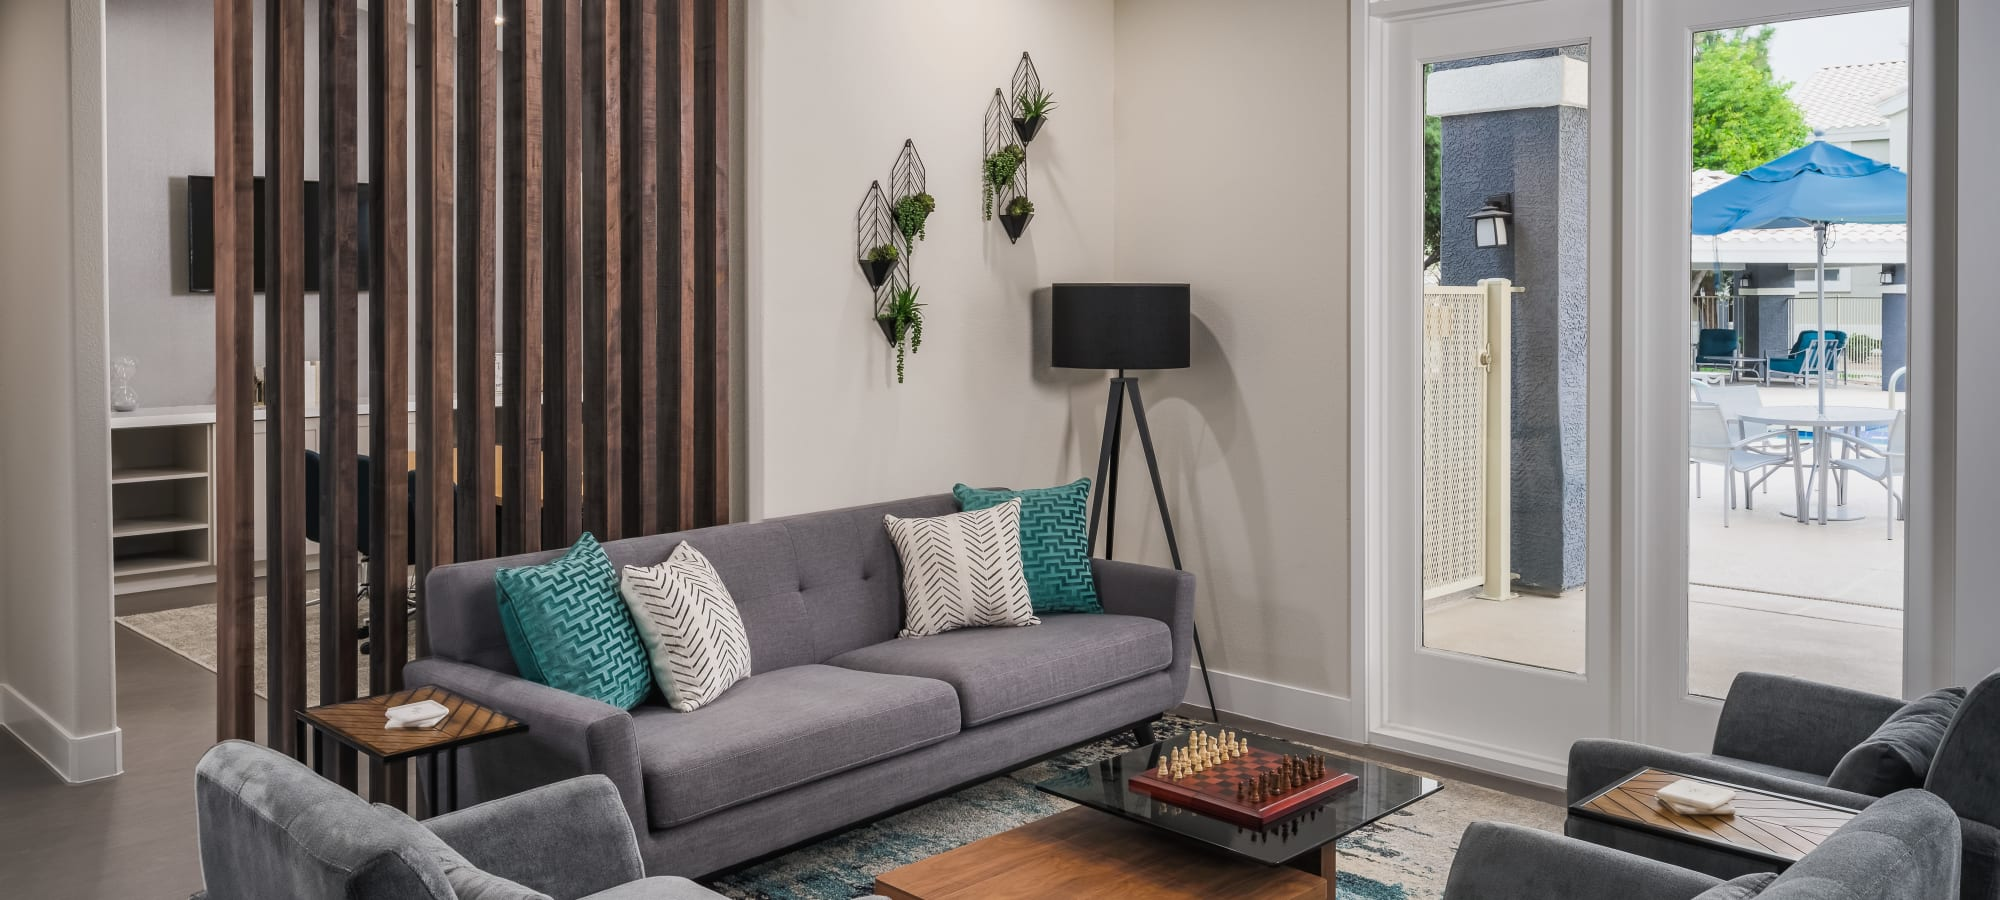 Cozy living room at The Sterling in Gilbert, Arizona